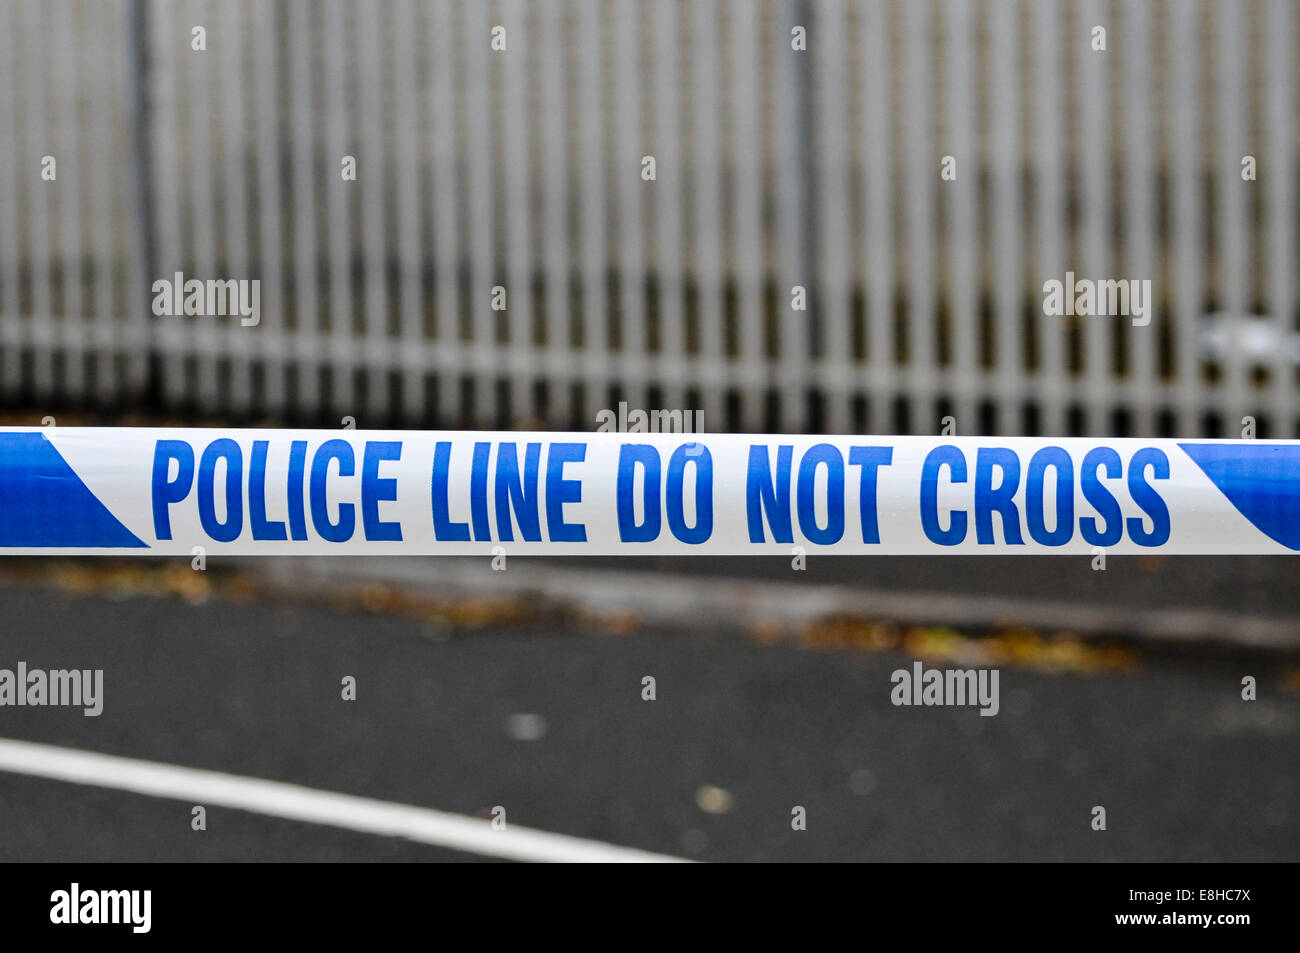 Police tape stretched across a road at a crime scene cordon point.   Credit:  Stephen Barnes/Alamy Live News - Stock Image